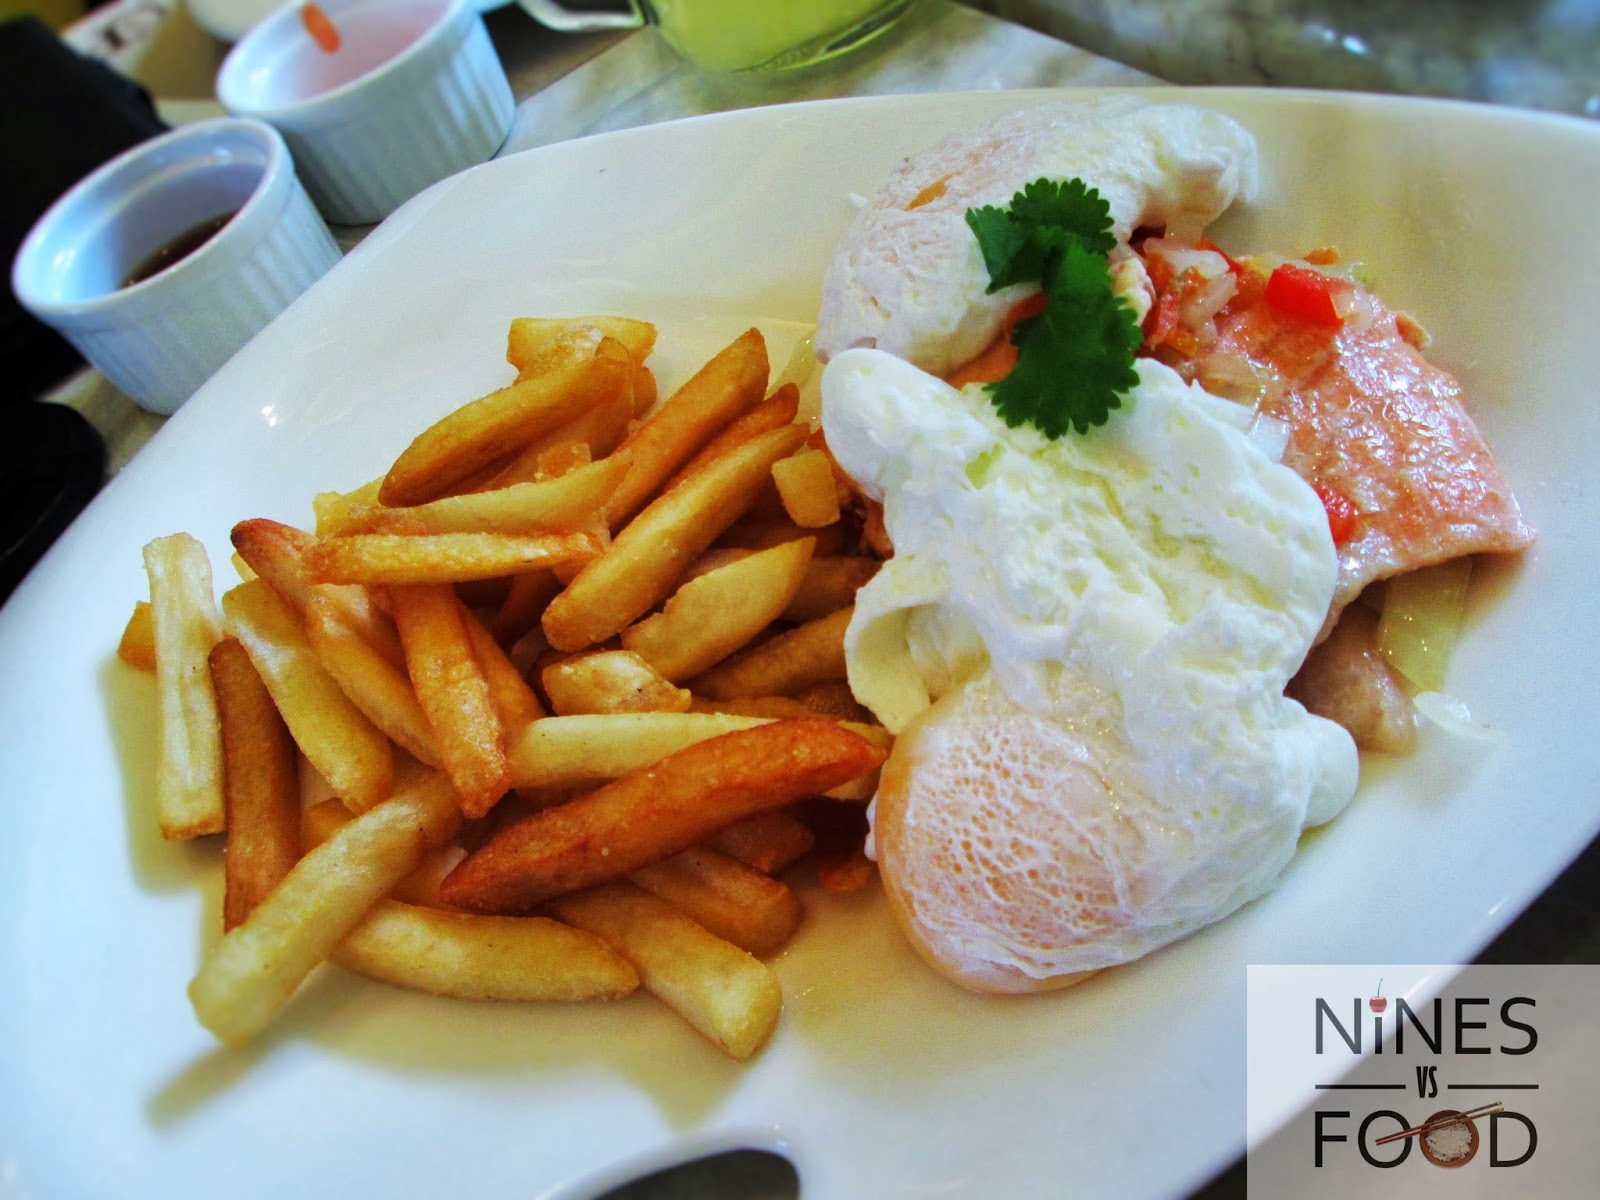 Nines vs. Food - B&P Shaw Mandaluyong-19.jpg